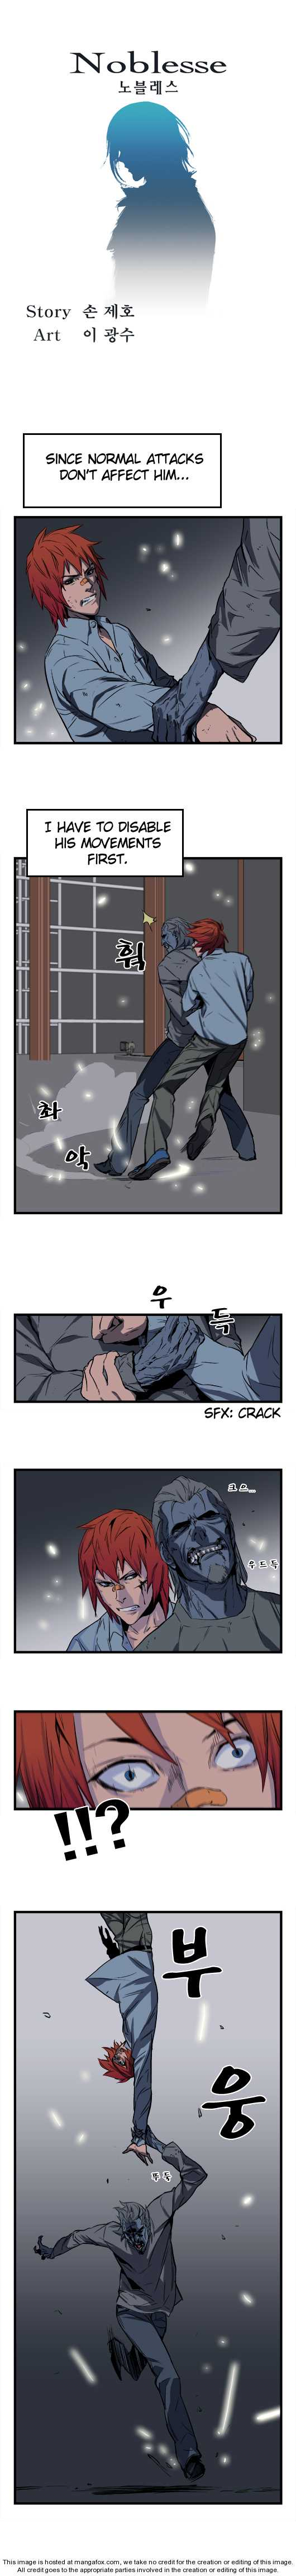 Noblesse 31 Page 1